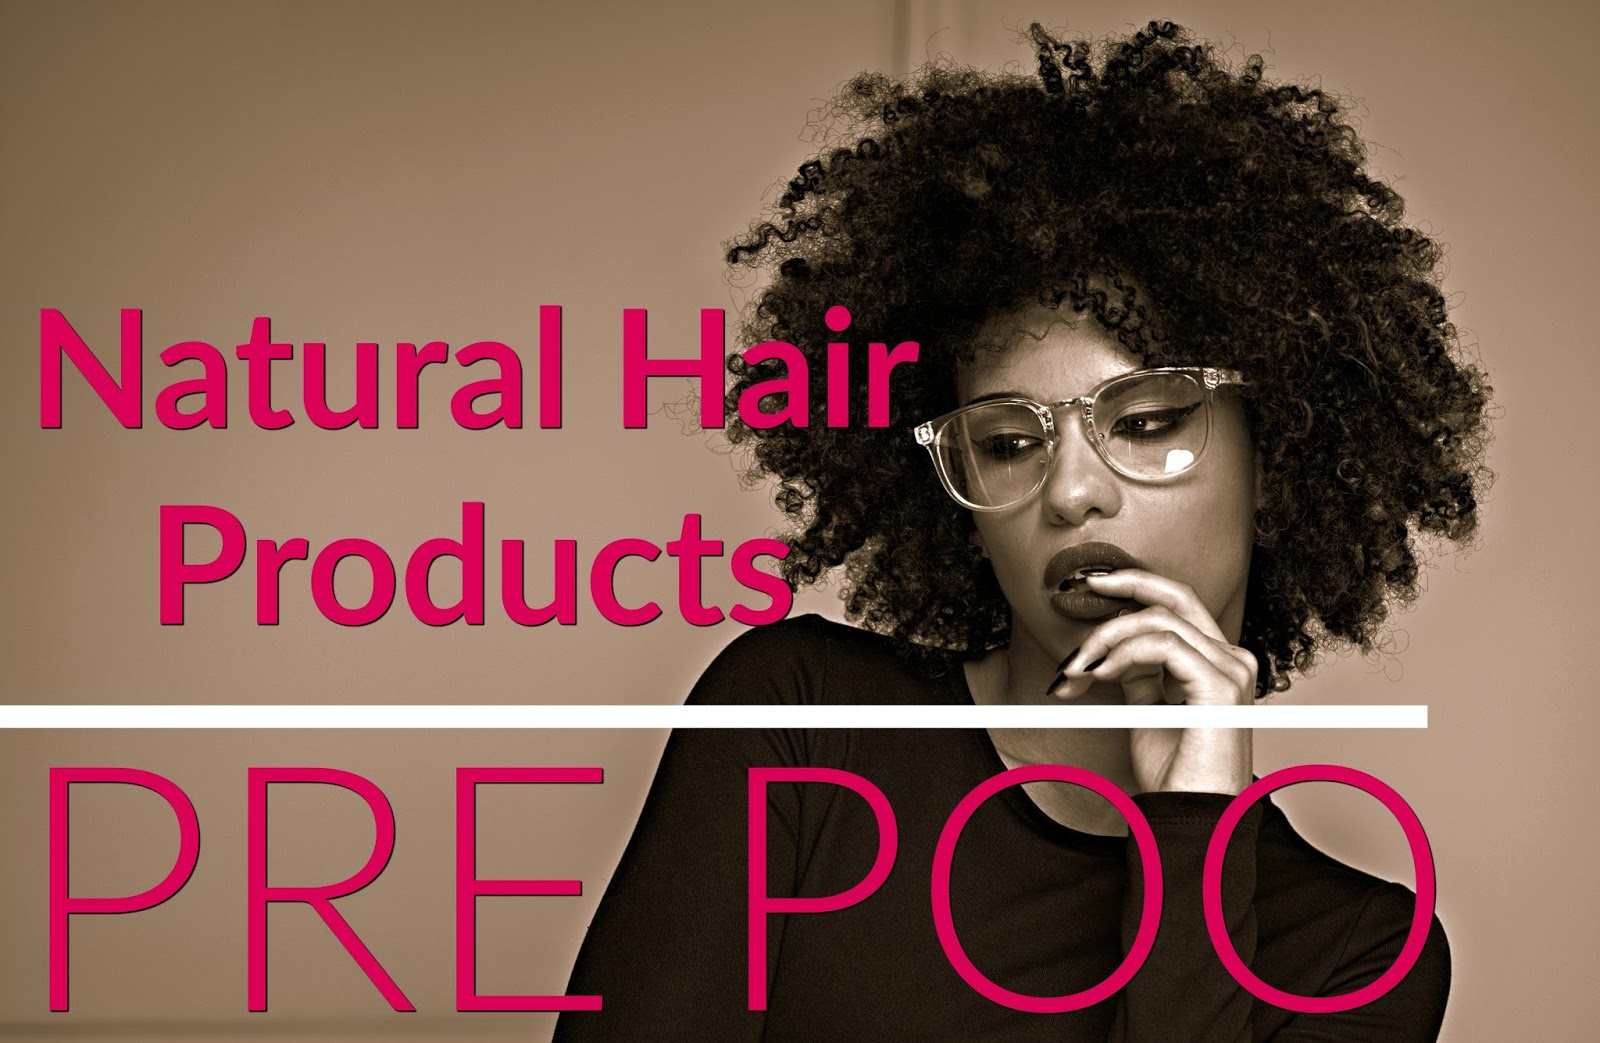 Natural Hair Styling Tools: Natural Hair Products - The Pre Poo